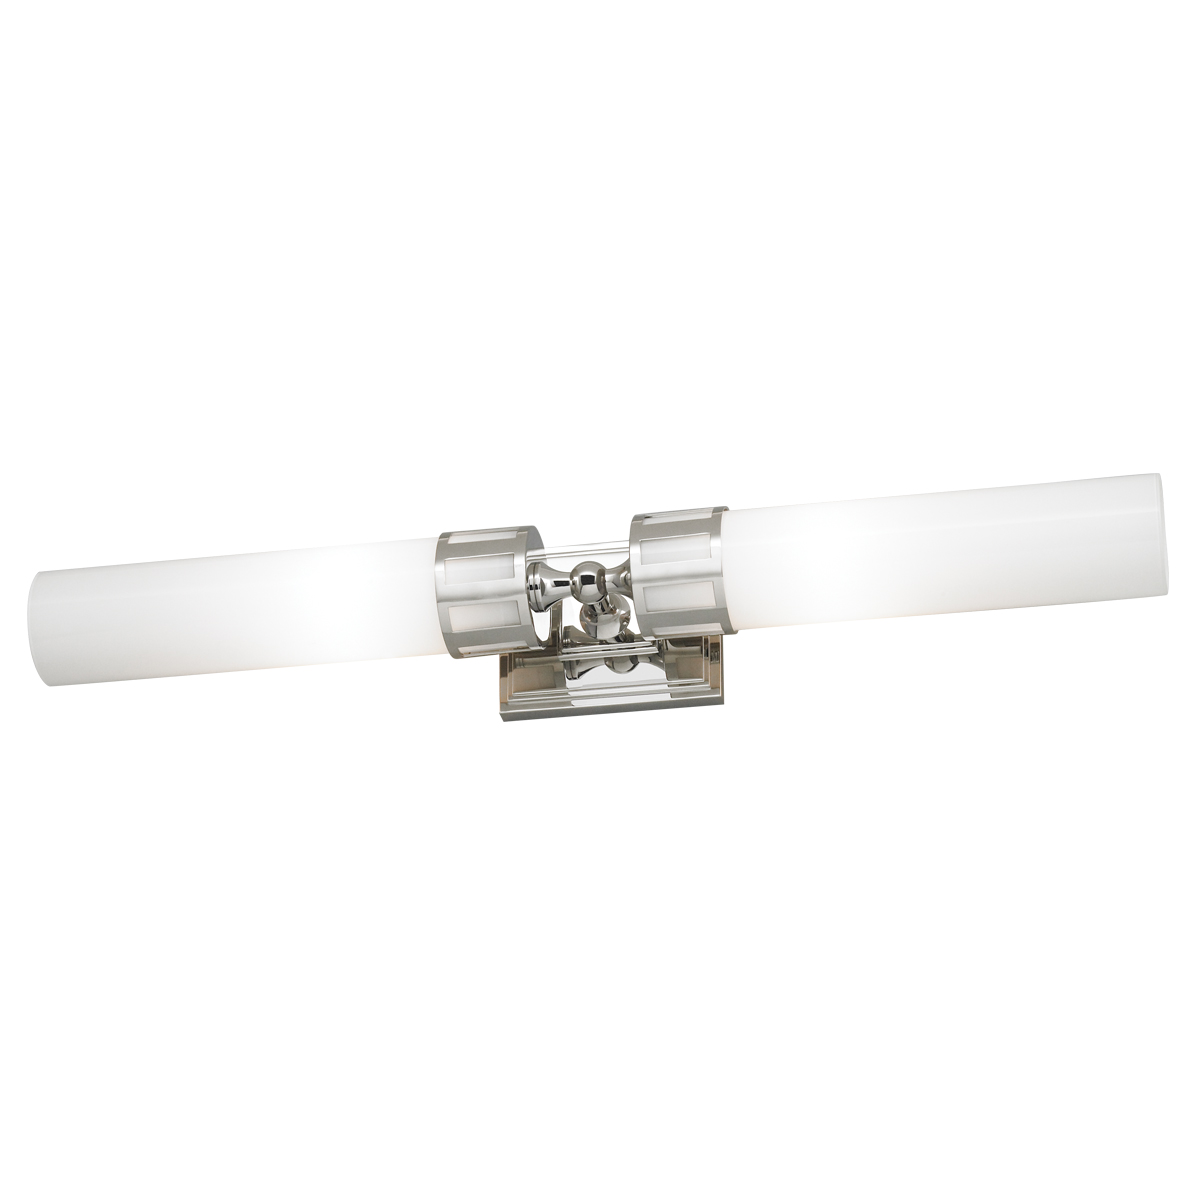 light bath bar by norwell lighting  chso - astor  light bath bar by norwell lighting  chso